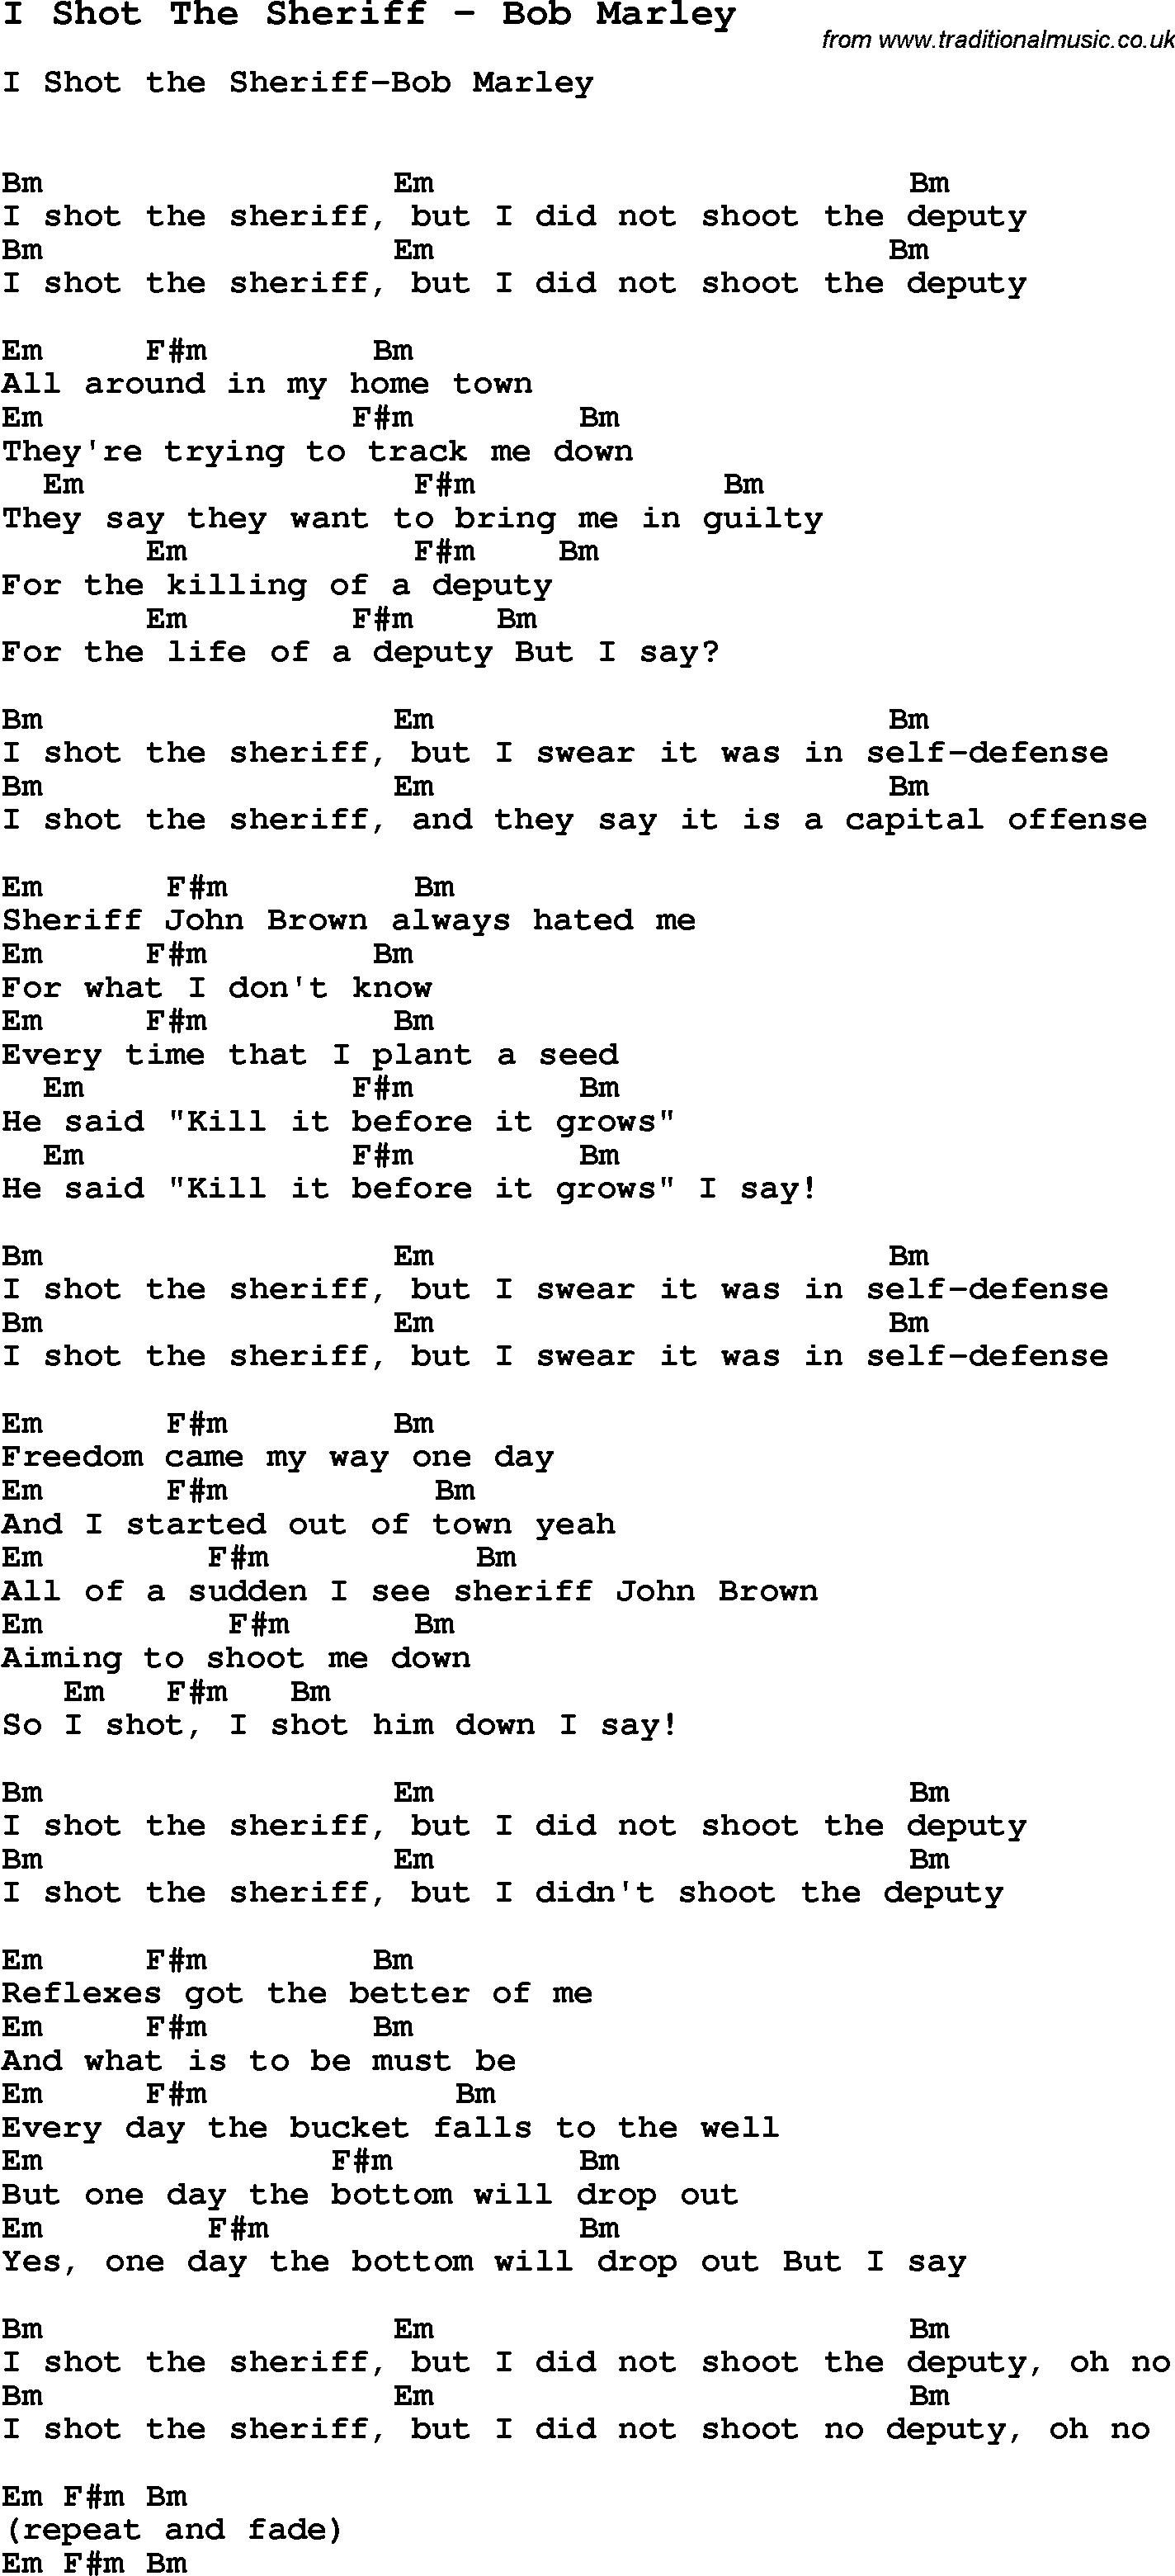 Song i shot the sheriff by bob marley with lyrics for vocal song i shot the sheriff by bob marley song lyric for vocal performance plus accompaniment chords for ukulele guitar banjo etc hexwebz Gallery